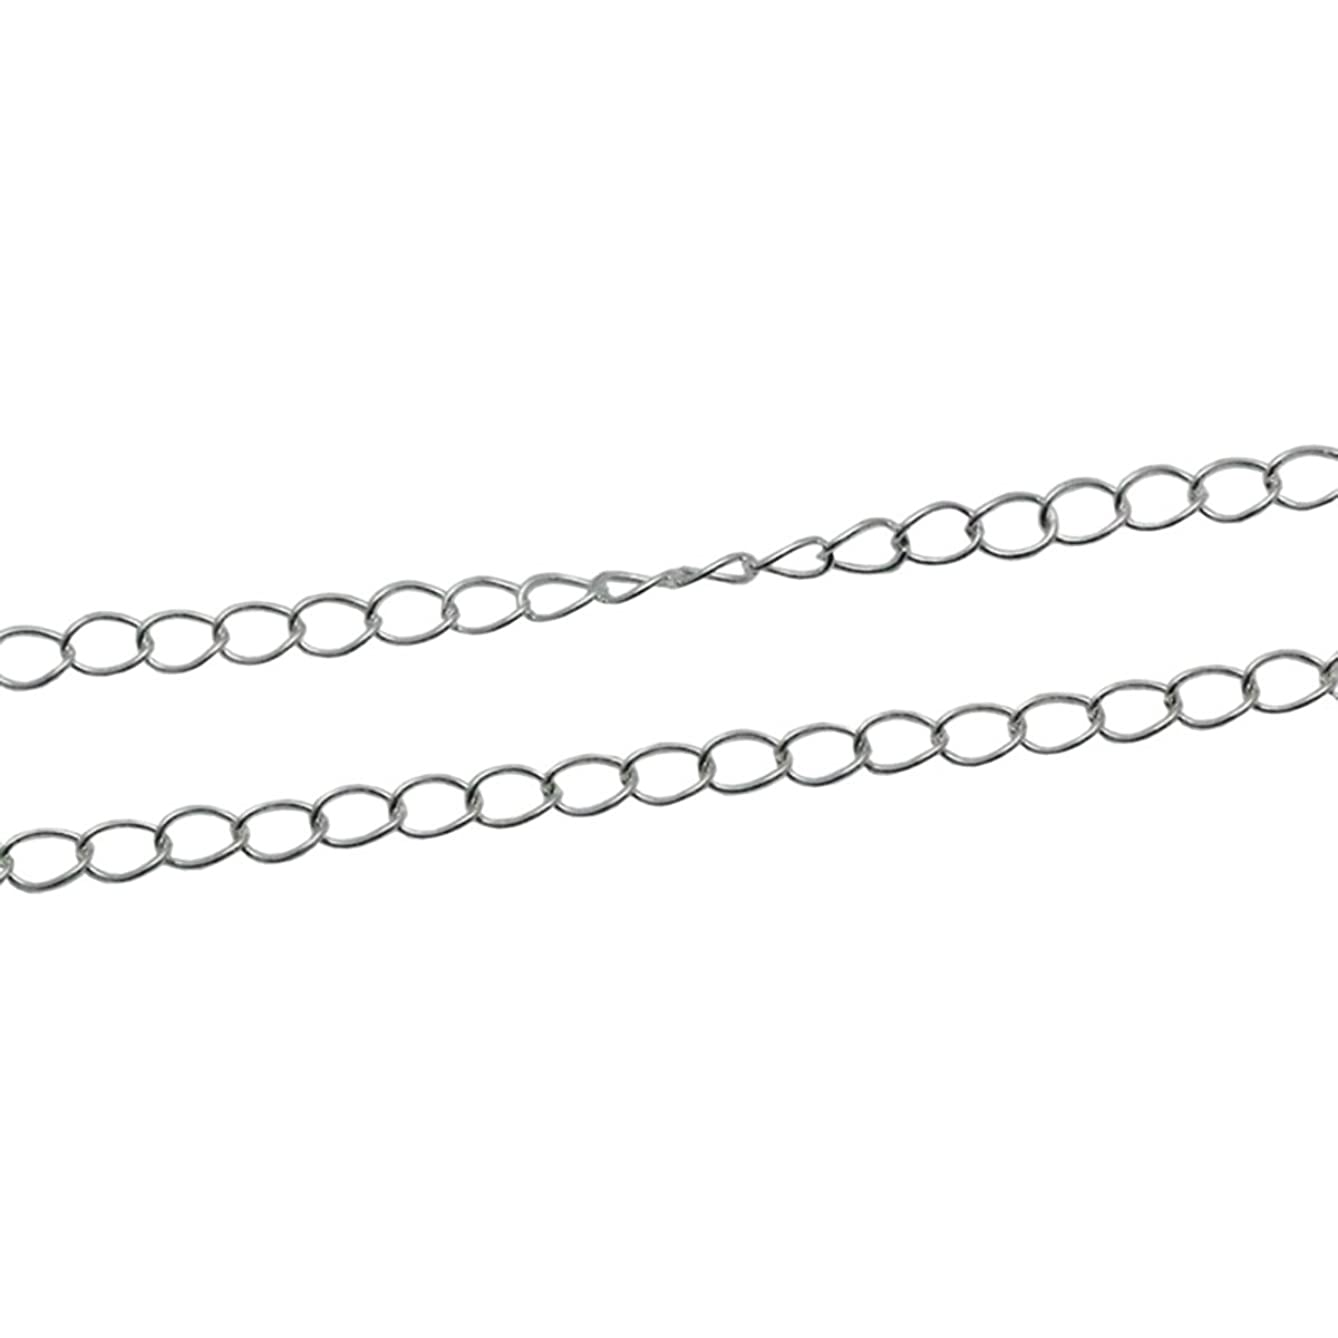 925 Sterling Silver Bulk Chain Cable Chain Unfinished Chains for Jewelry Making 3 Feet Per Lot (2.6x3.9mm, Silver Plated)